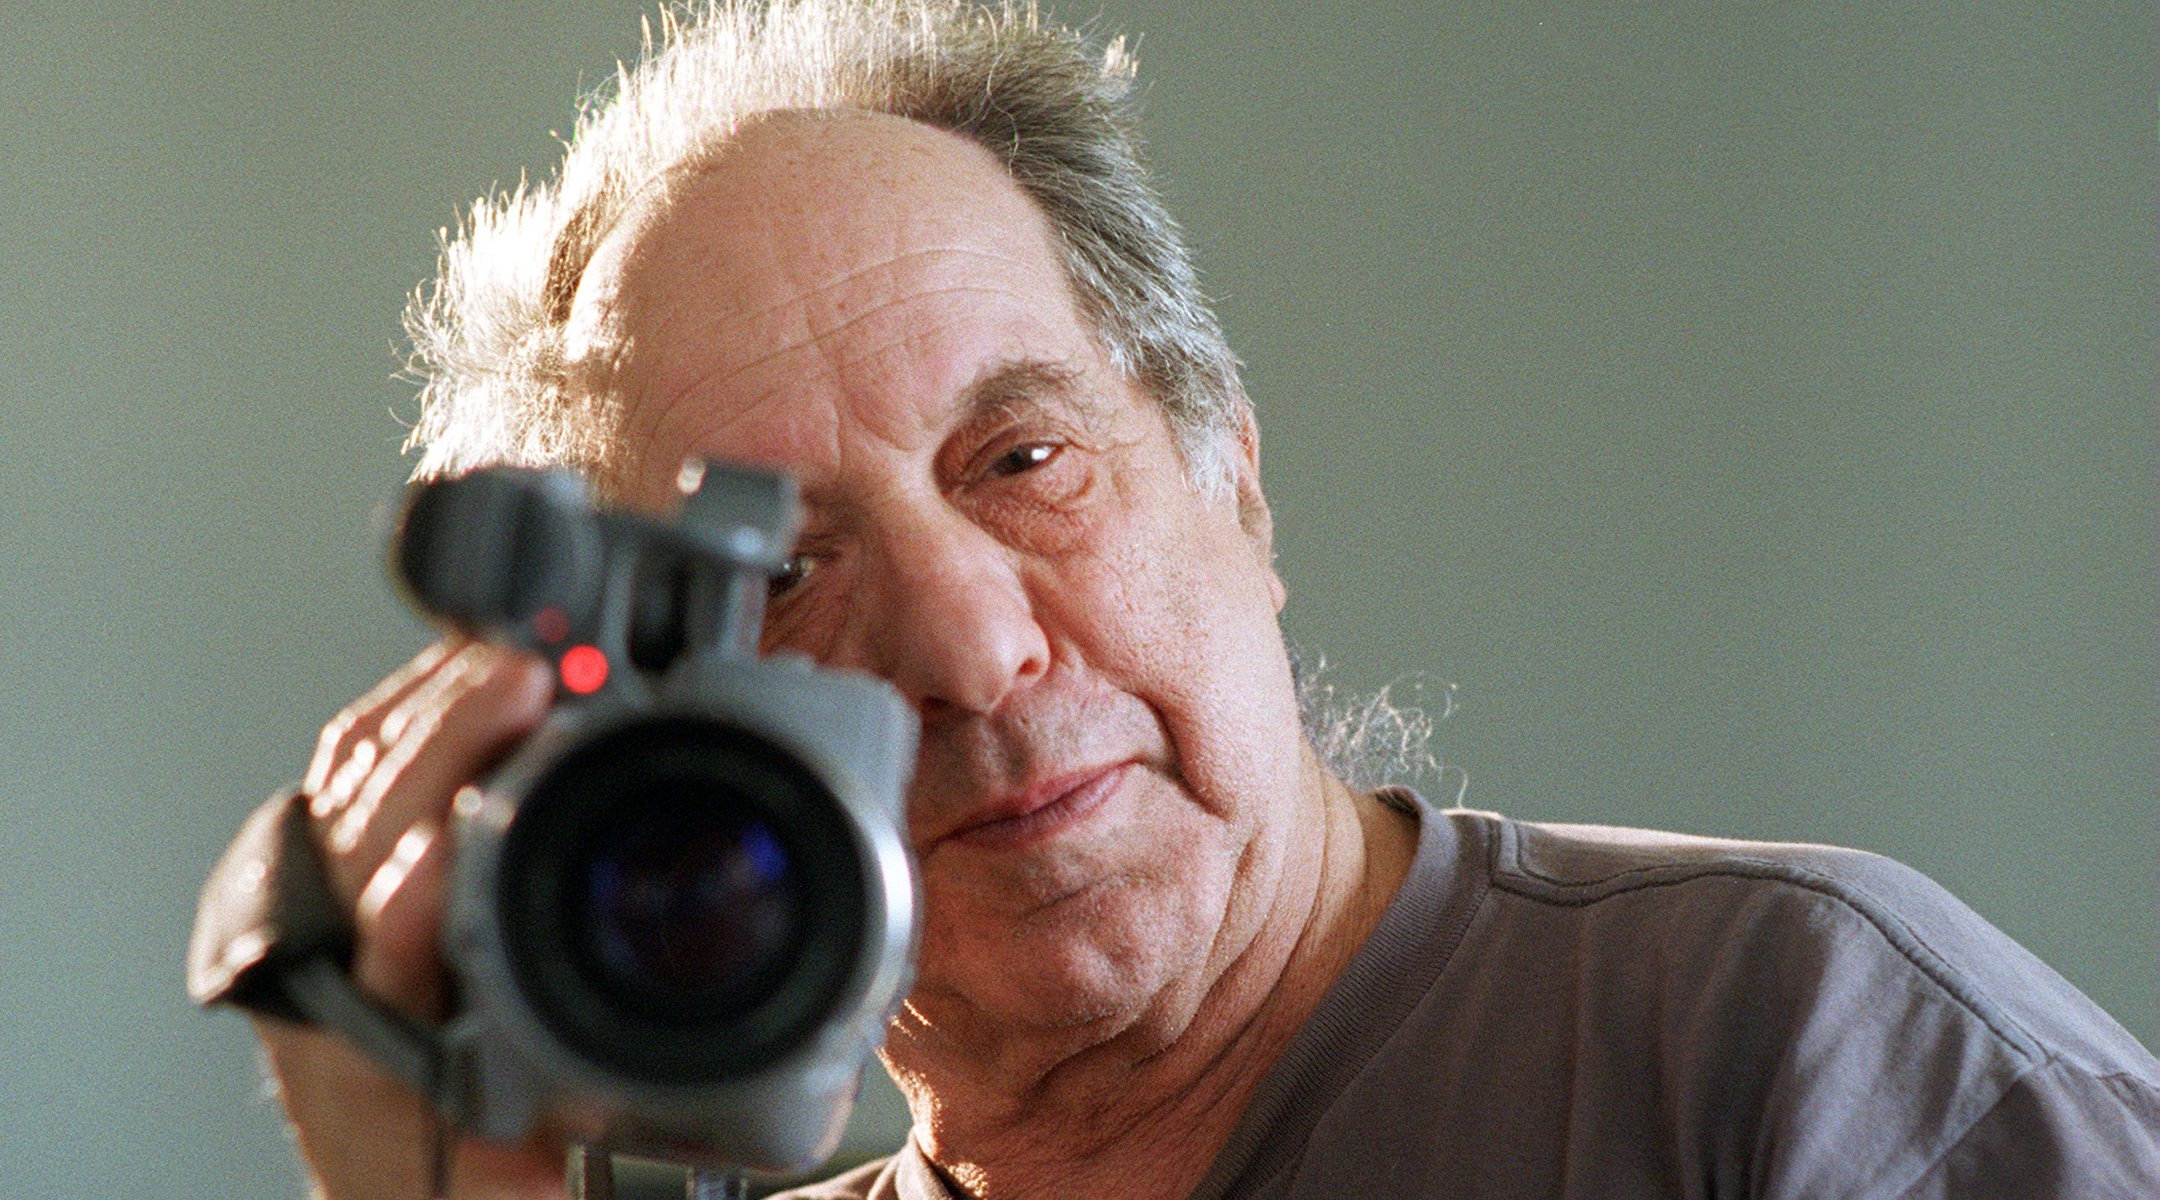 Robert Frank in 1996. (Patrick Downs/Los Angeles Times via Getty Images)